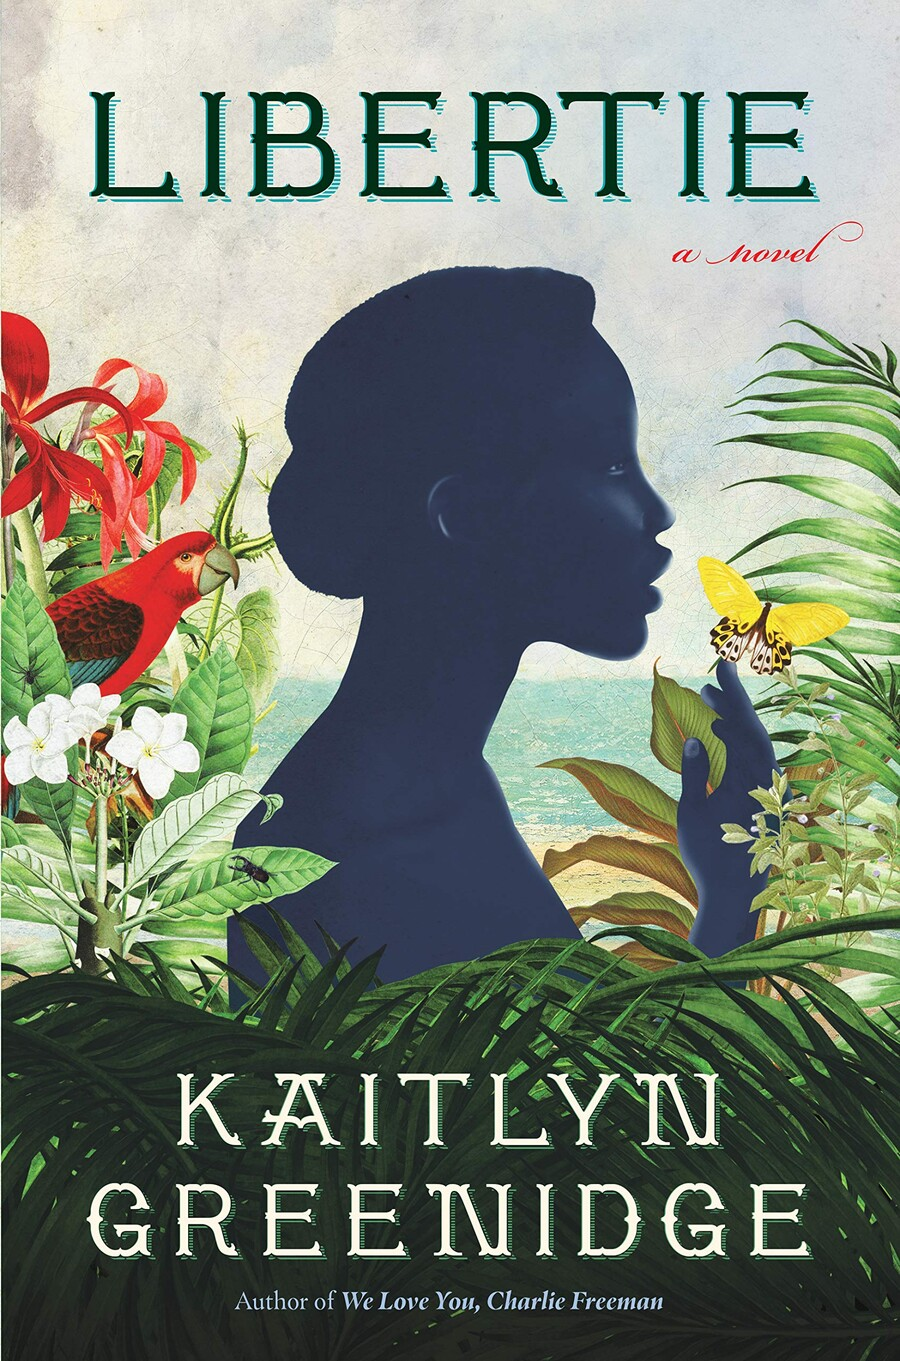 Libertie is a book cover that features an illustration of a dark-skinned woman in profile surrounded by an ocean in the background and flowers around her